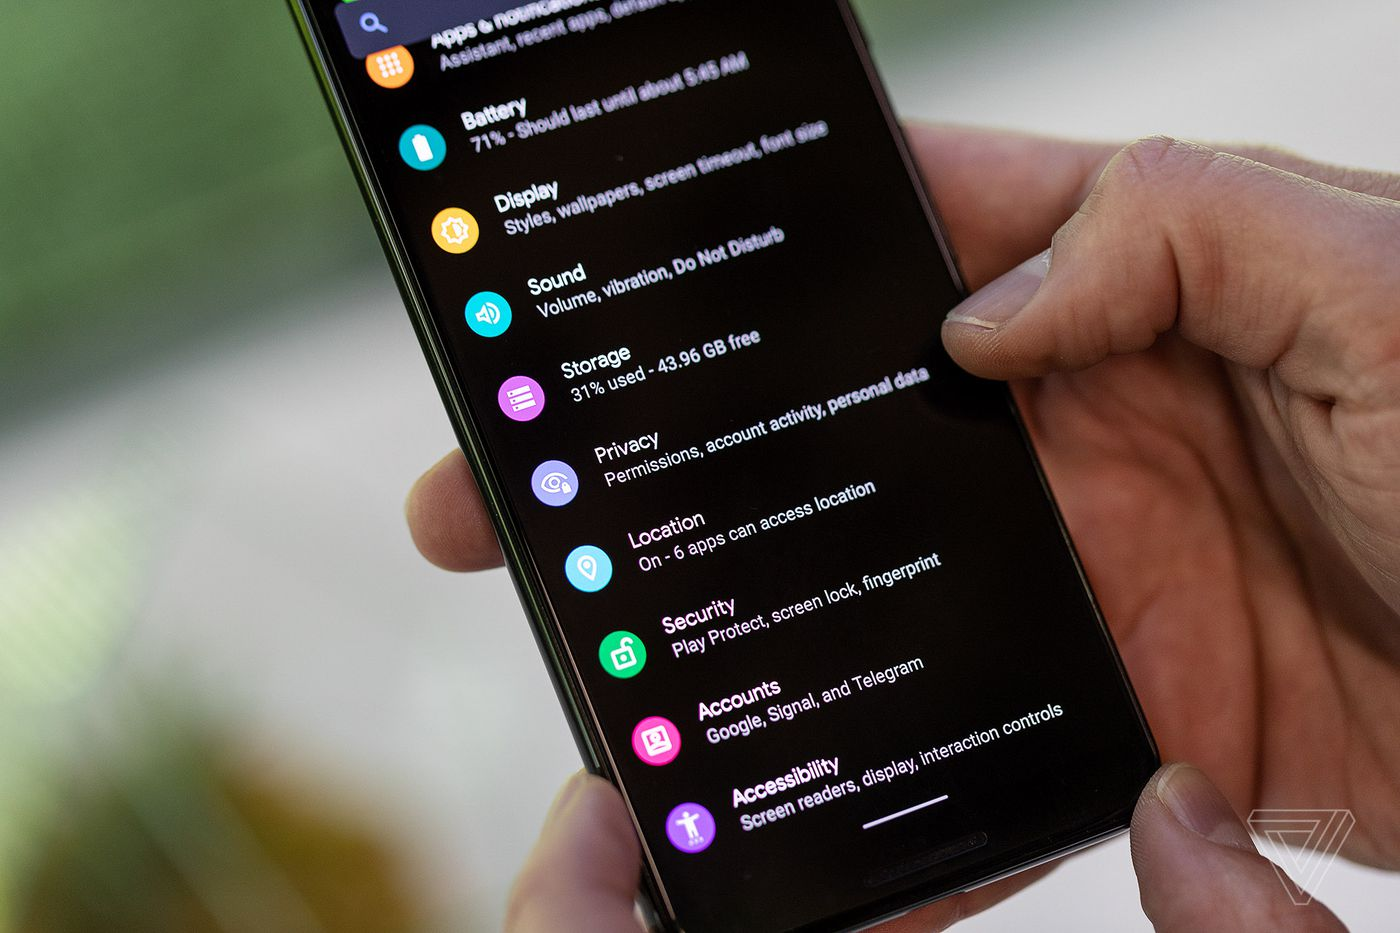 Android Q exclusive first look: better gestures, live captions, and